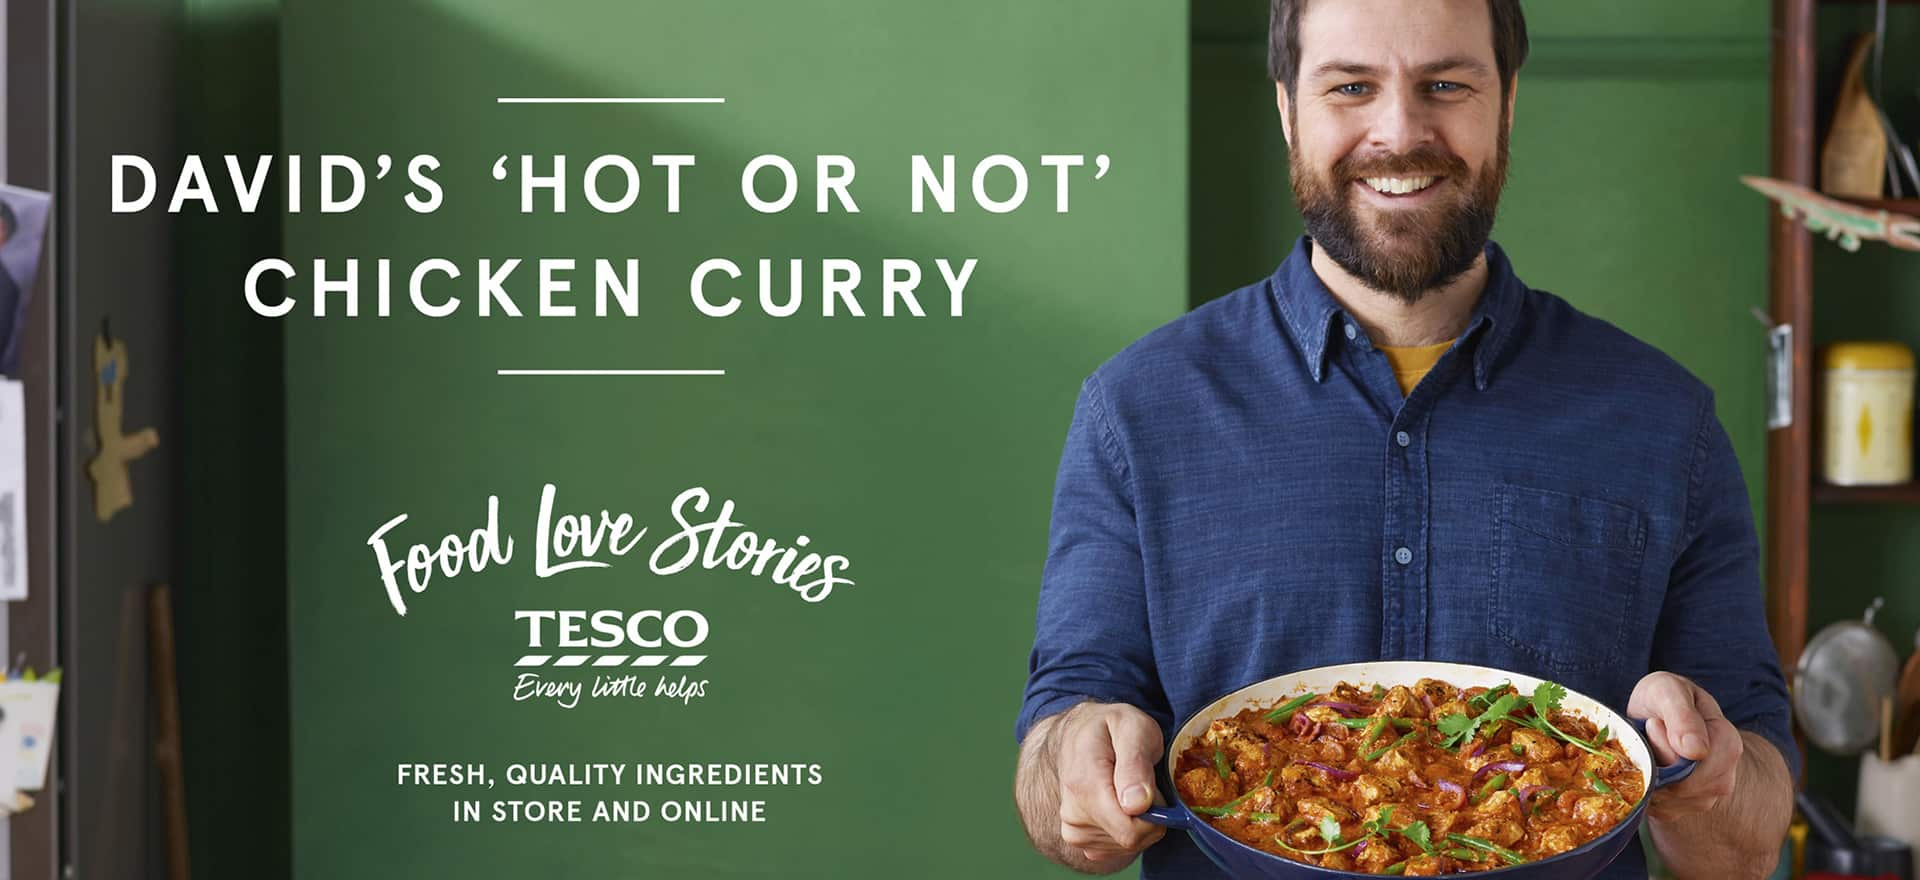 Tesco-Food-Love-Stories-marketing- FMCG advertising, retail advertising, Food and drink advertising, shopper advertising